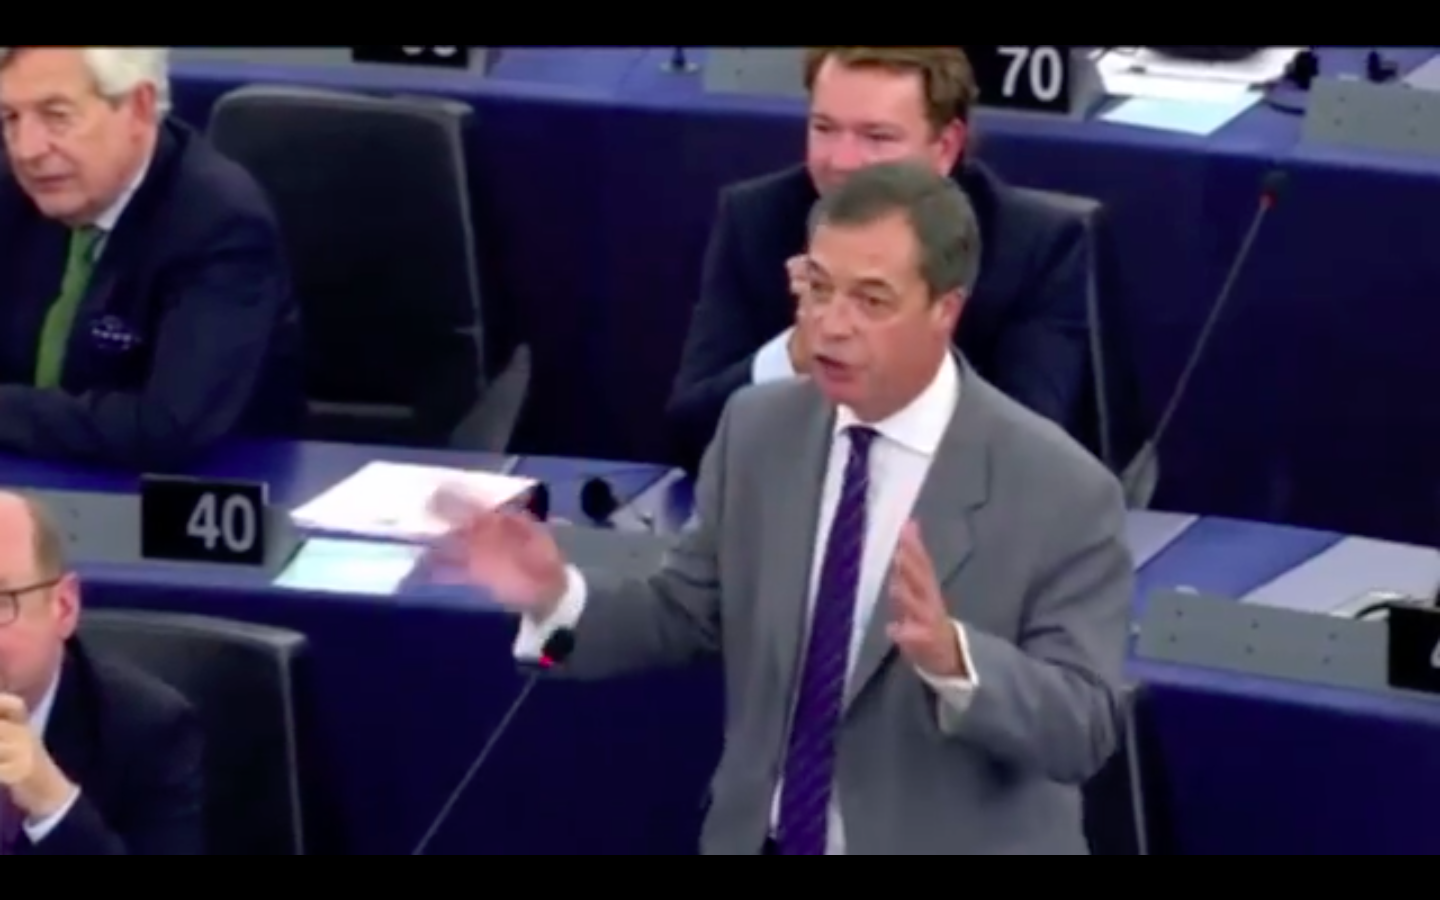 Video: Watch EU MP Nigel Farage Absolutely Torch The EU Over Its Treatment Of Hungary As It Fights For Borders